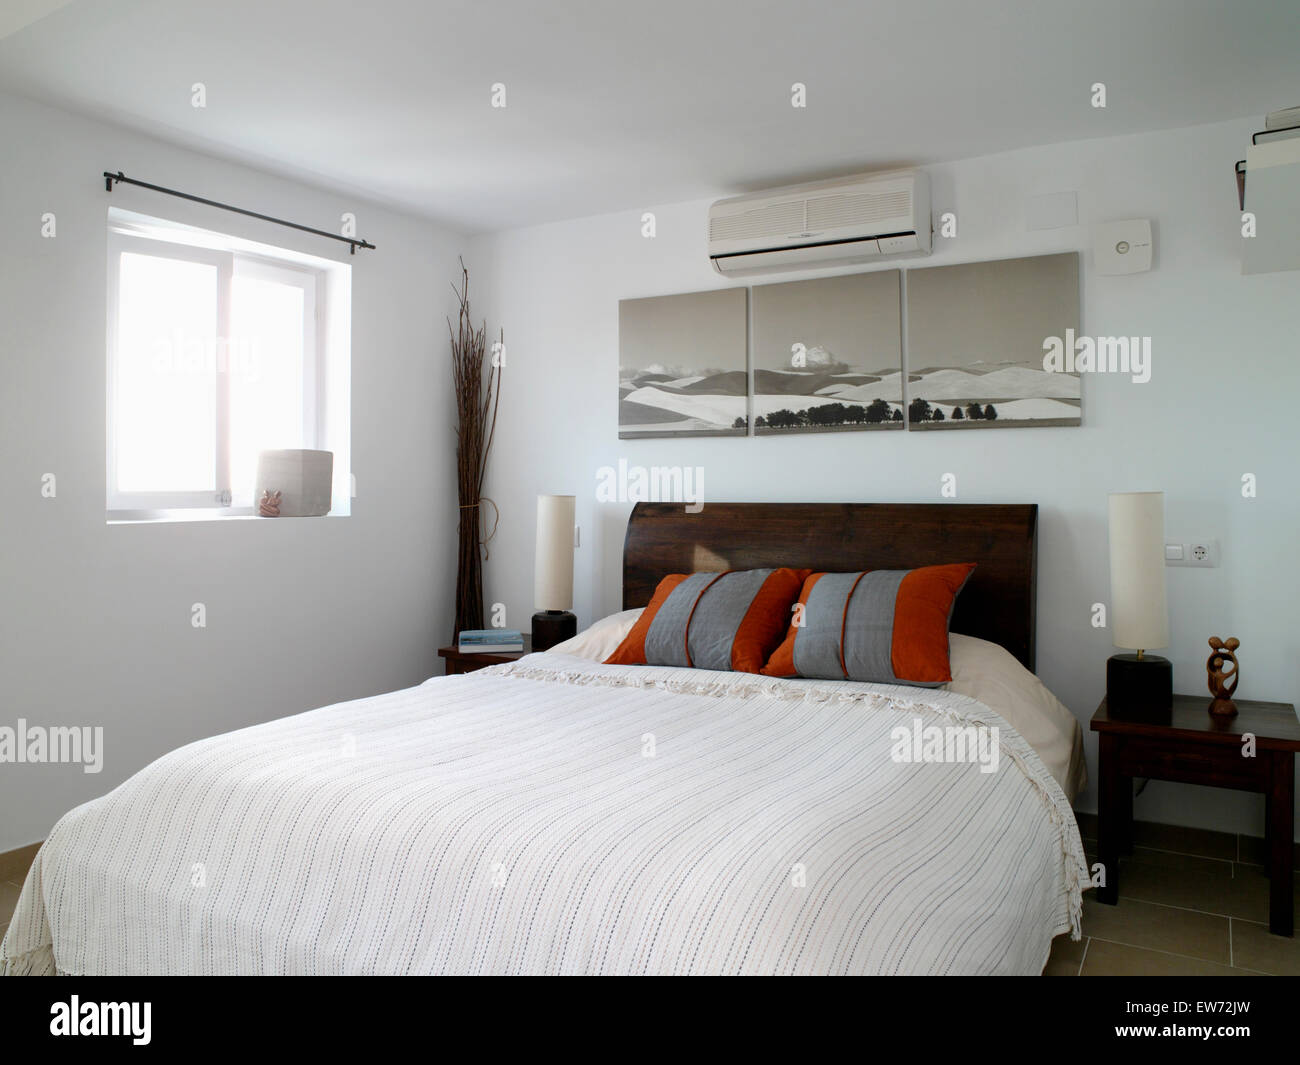 Air-conditioning unit and large picture above bed with gray+red ...